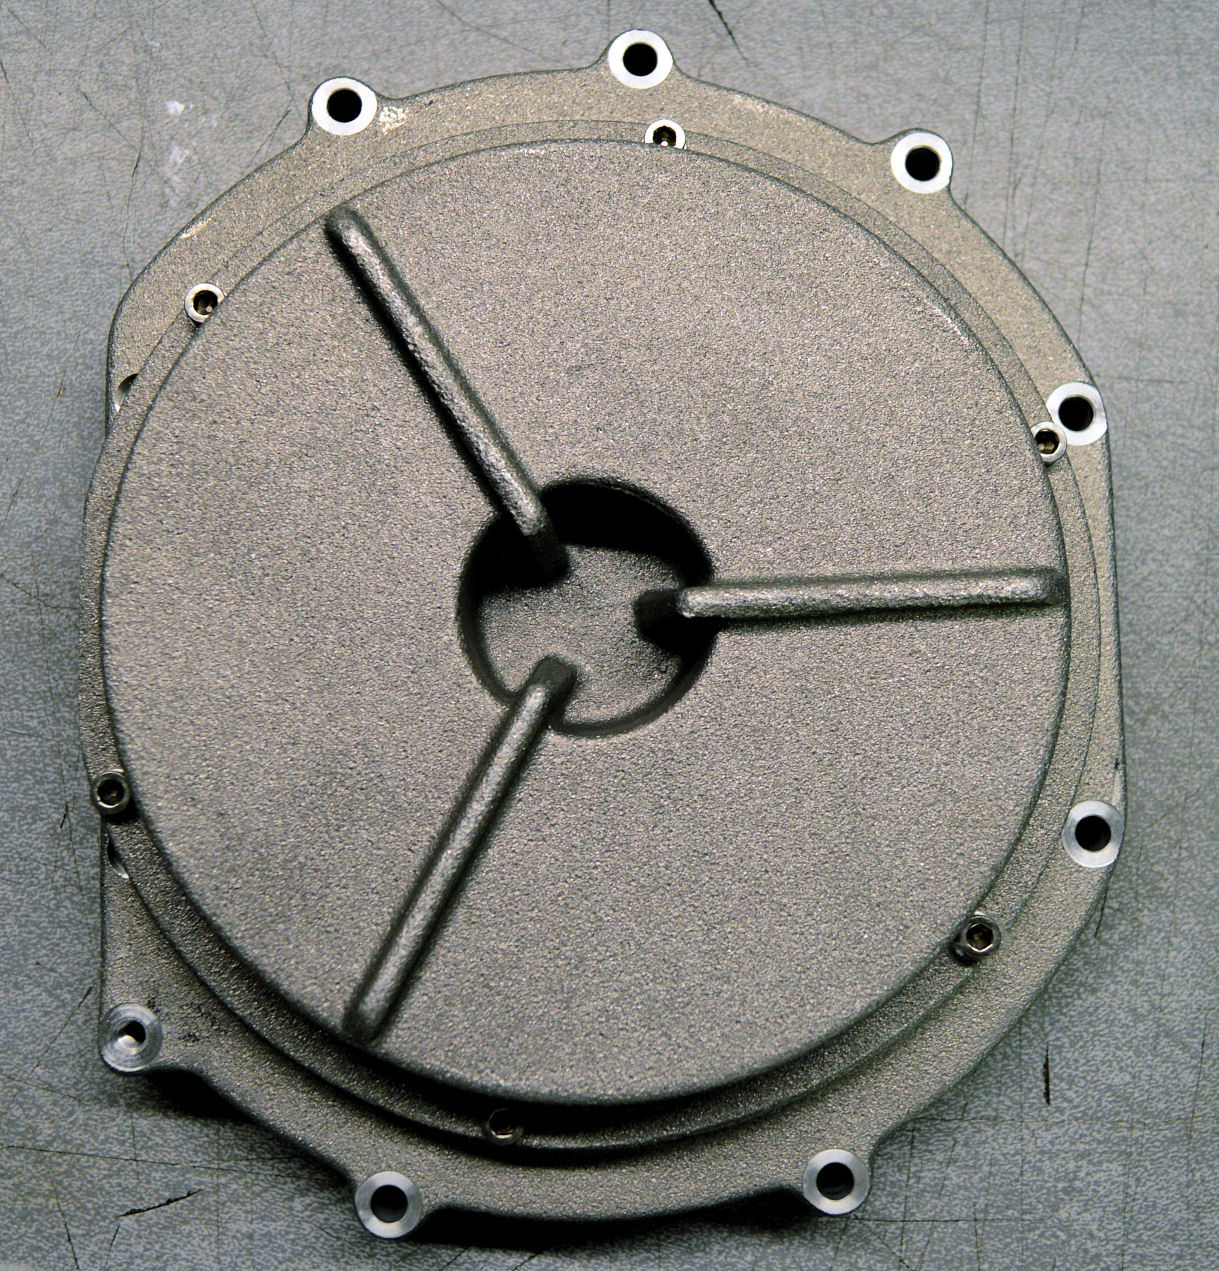 KAW (900/1000) QUICK ACCESS COVER (LOCKUP CLUTCH)